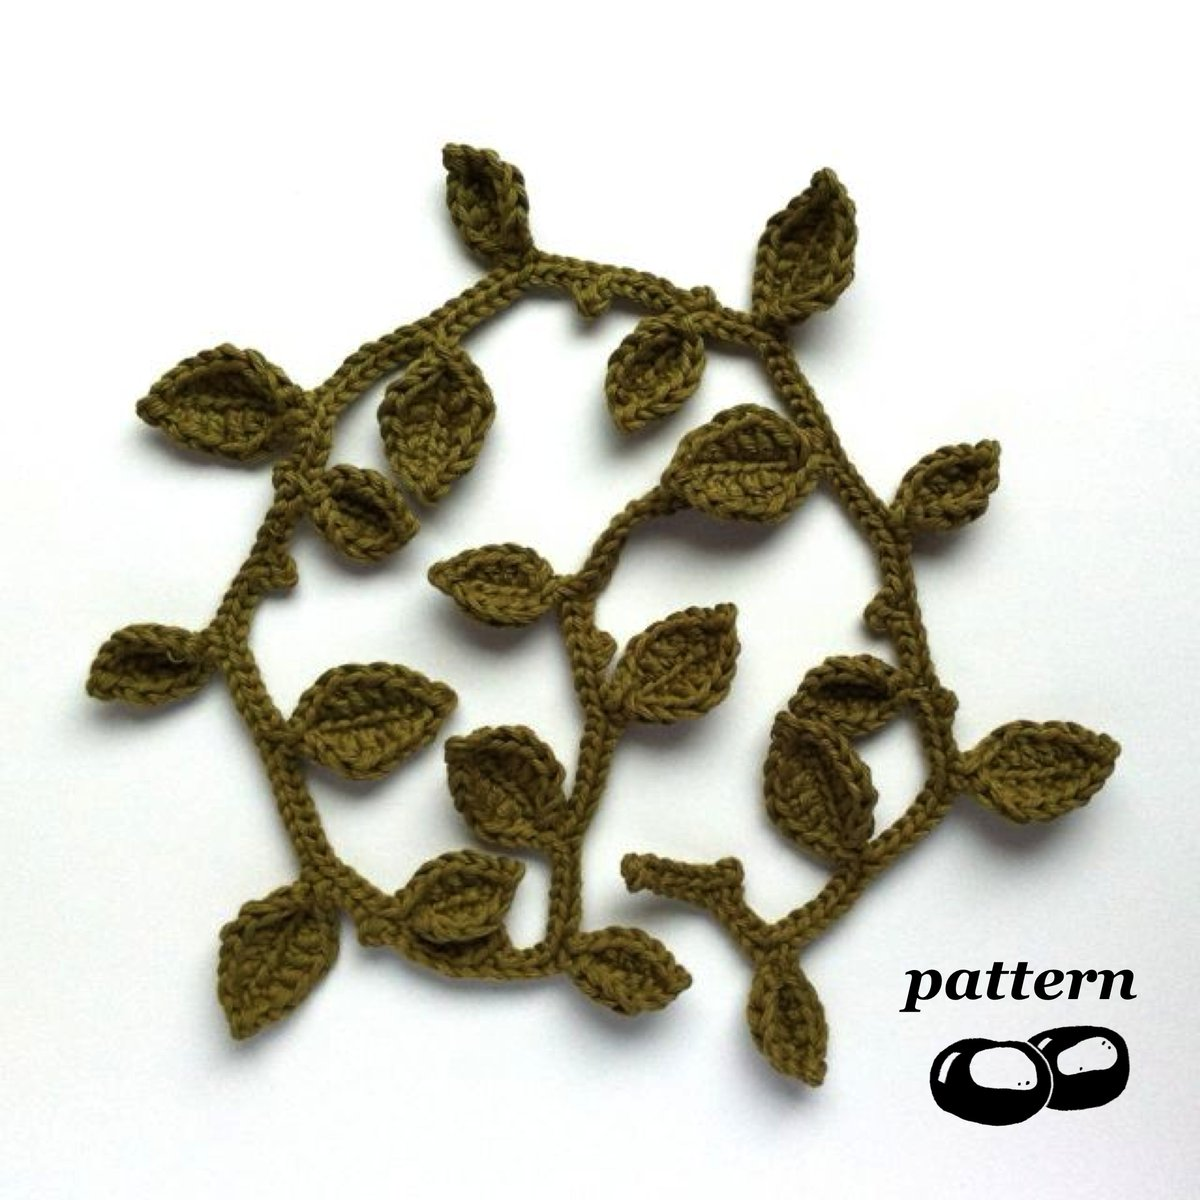 Little Conkers On Twitter Free Crochet Pattern Makes A Lovely Spring Garland With The Flowers Of Your Choice Or A Light Lacy Scarf For Spring Https T Co Qmrww6q8eg Littleconkers Crochetpattern Freepattern Https T Co Wxqextuvvv